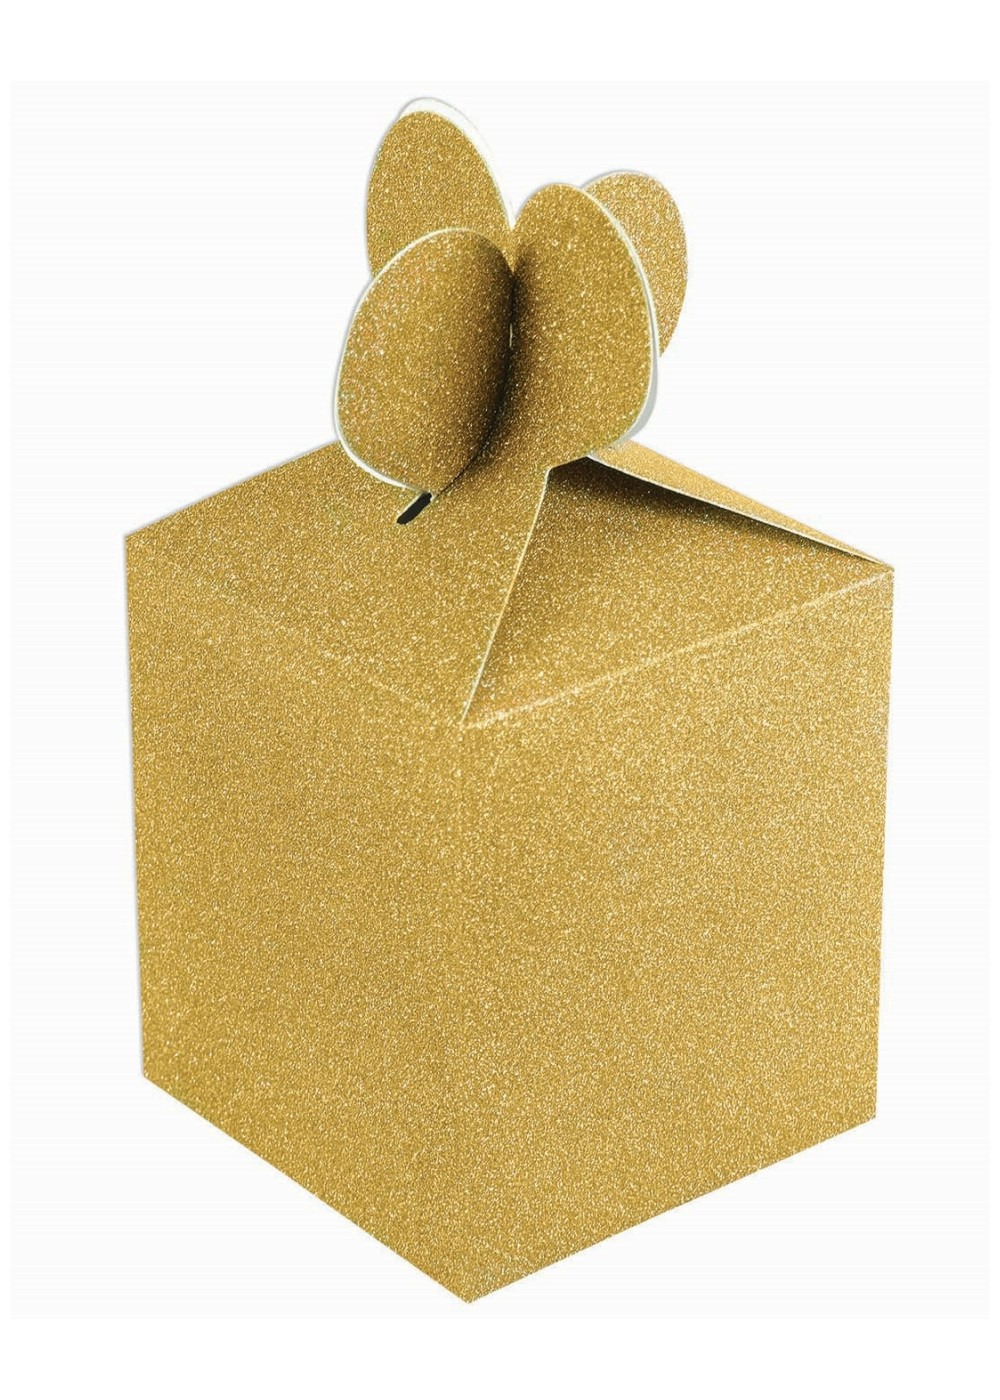 Diamond Gold Color Gift Boxes